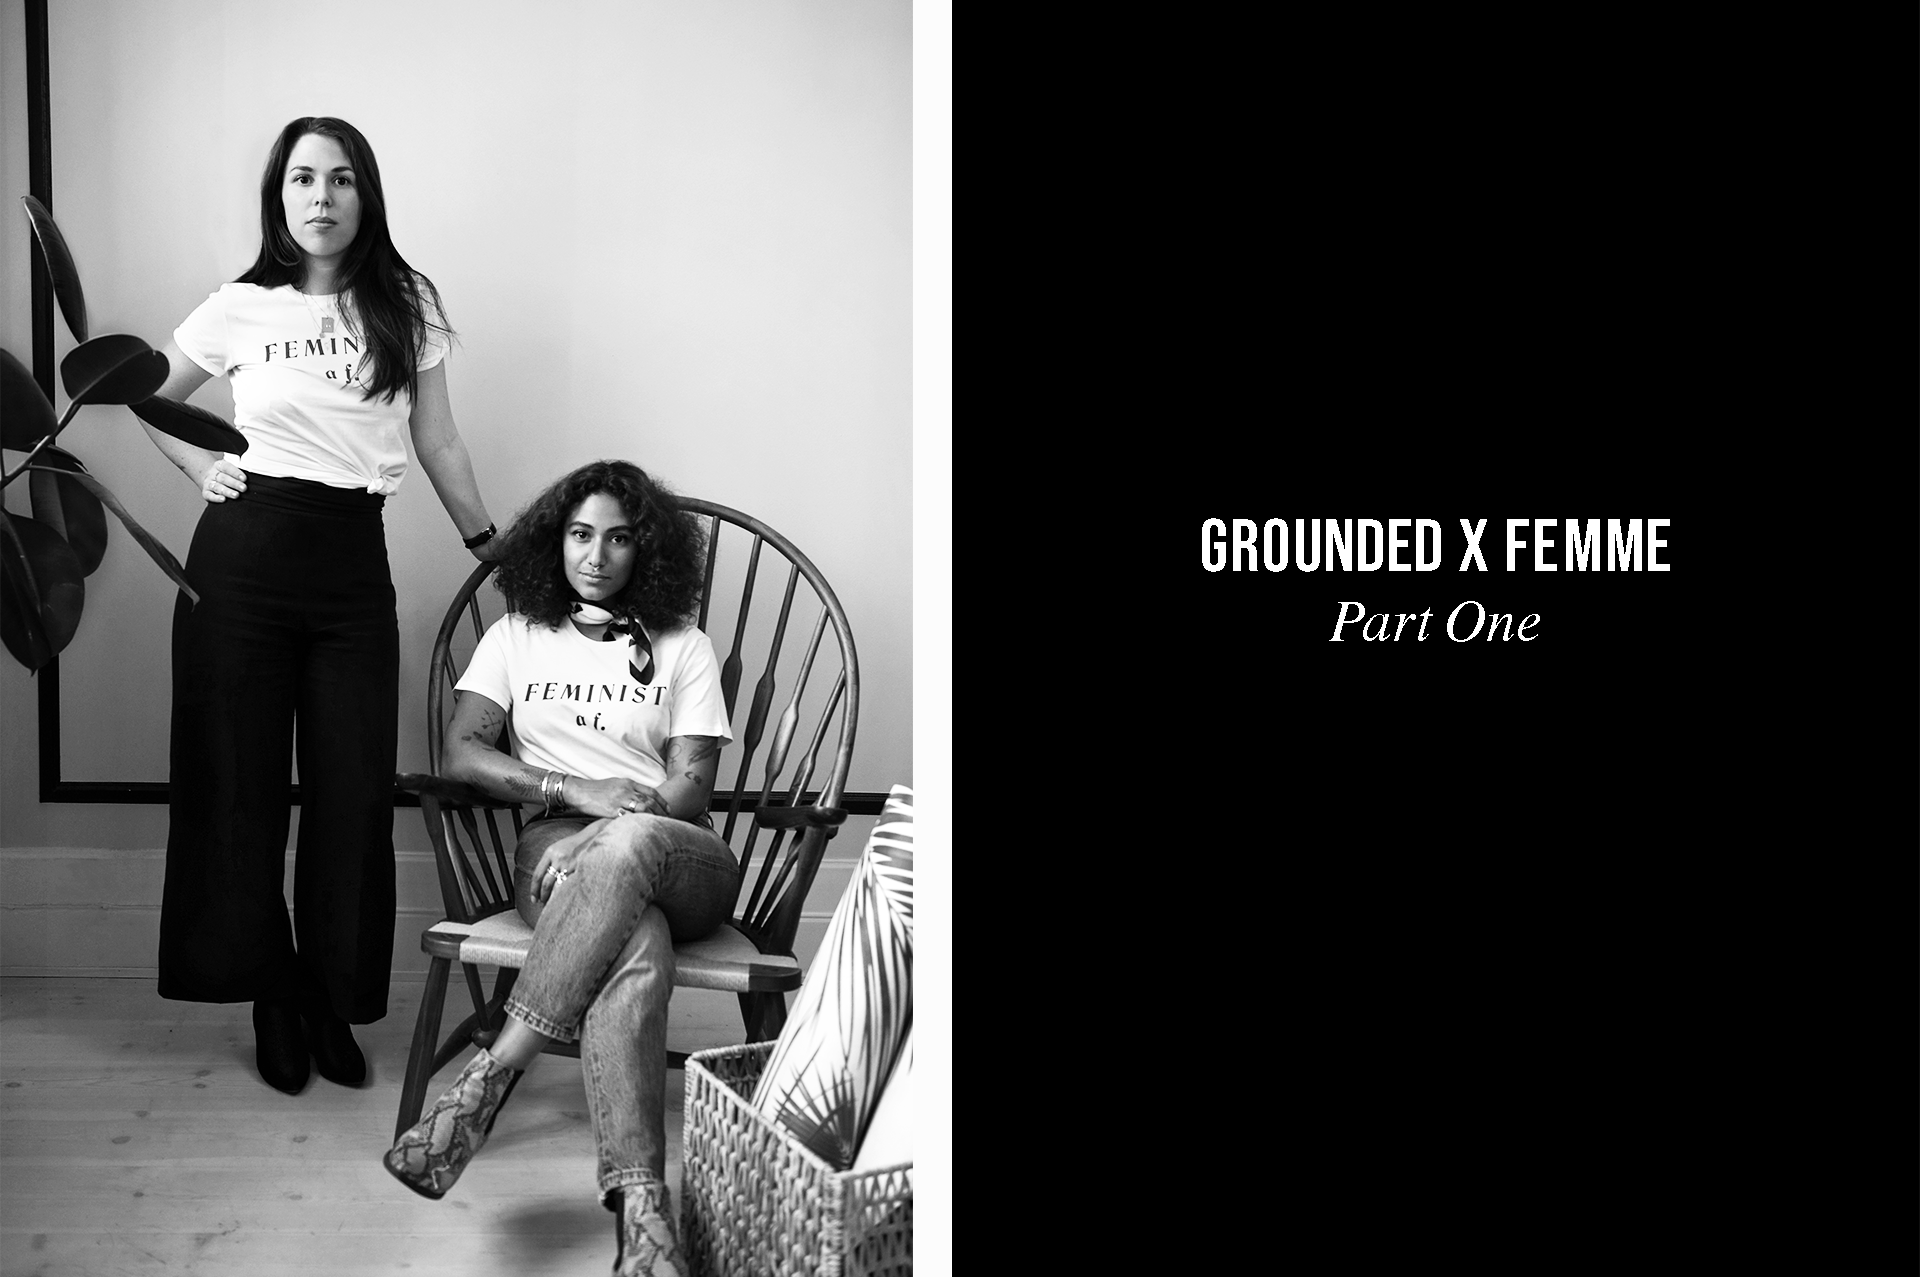 Grounded x Femme Part One